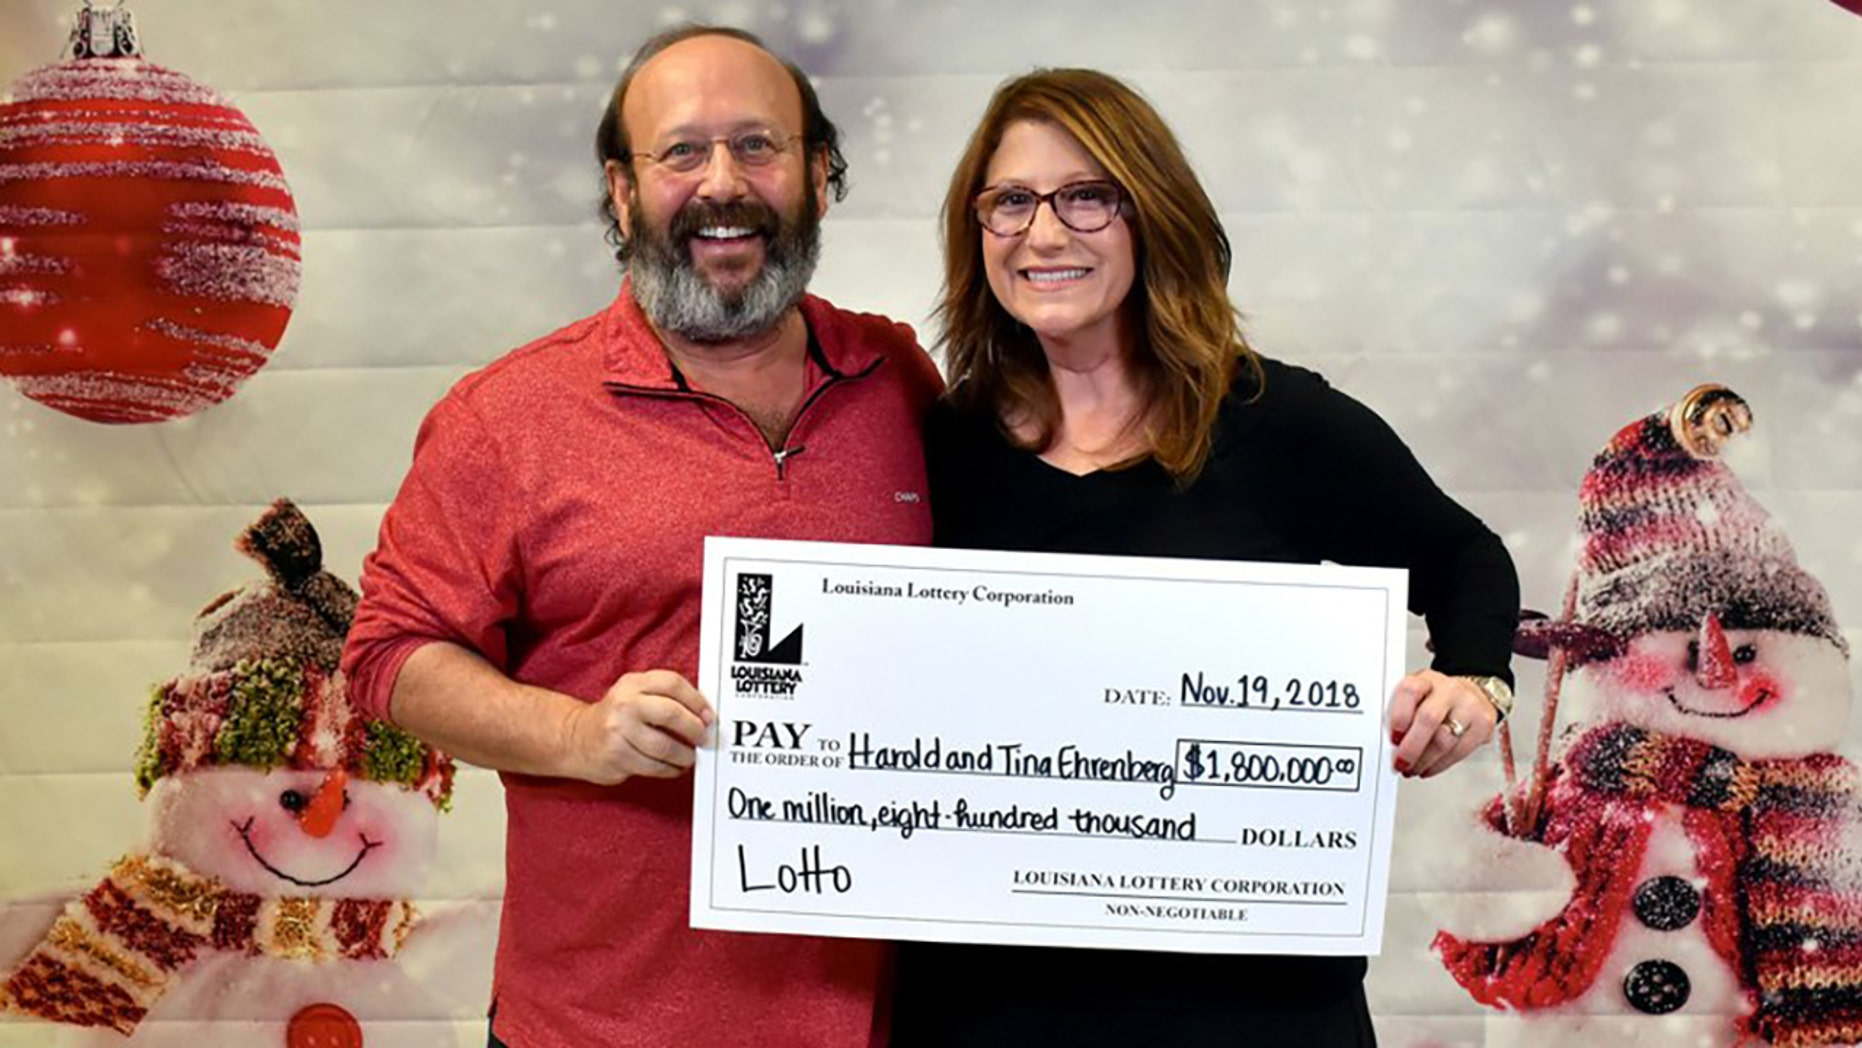 Harold and Tina Ehrenberg were cleaning their house this week ahead of the holidays when they found a winning lottery ticket worth $1.8 million, Louisiana Lottery officials said.